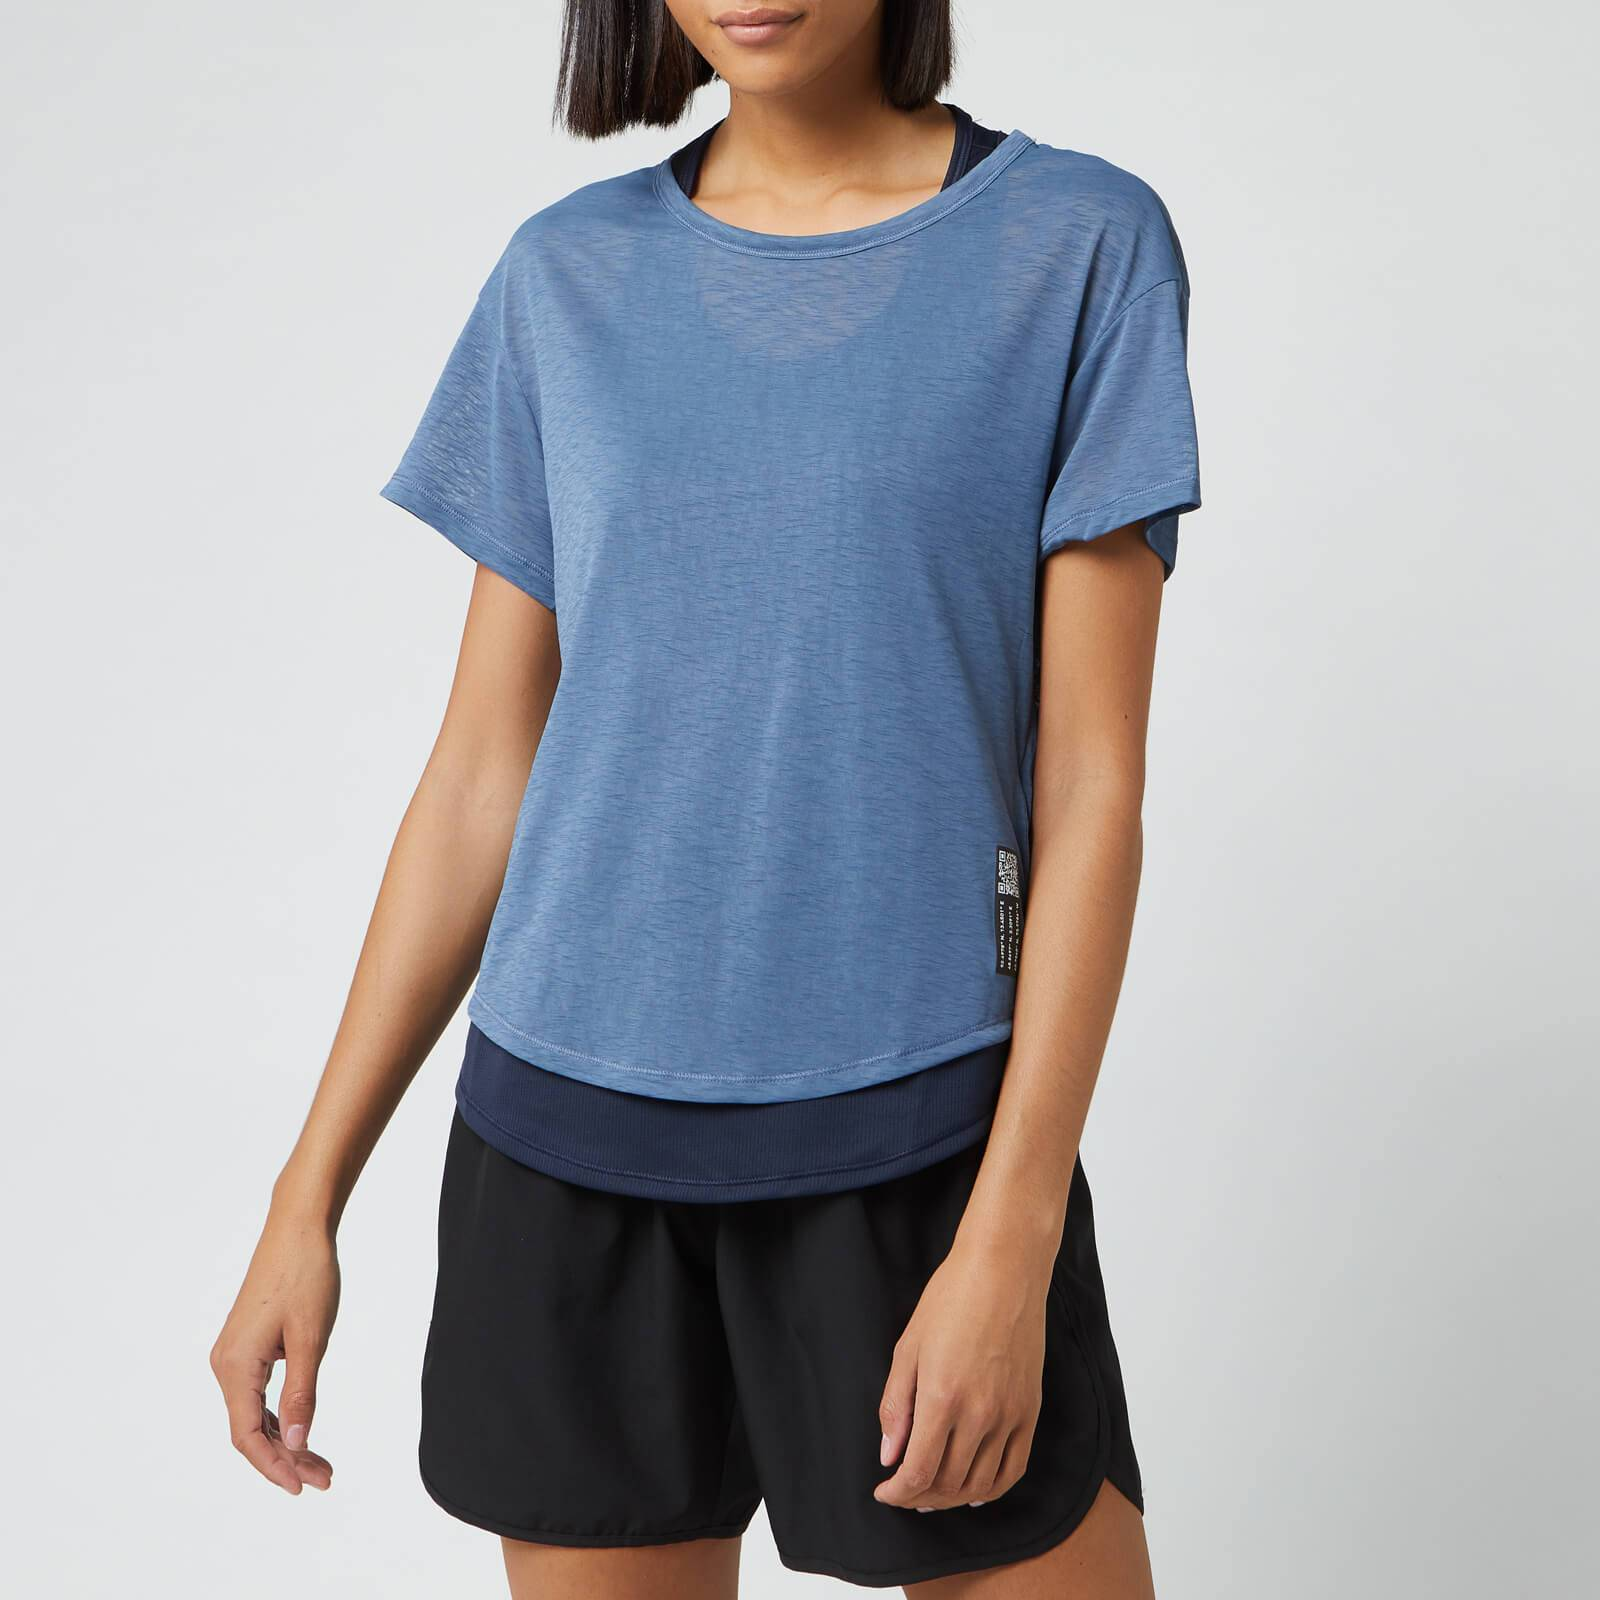 adidas Women's Adapt Short Sleeve T-Shirt - Blue - XS - Blue